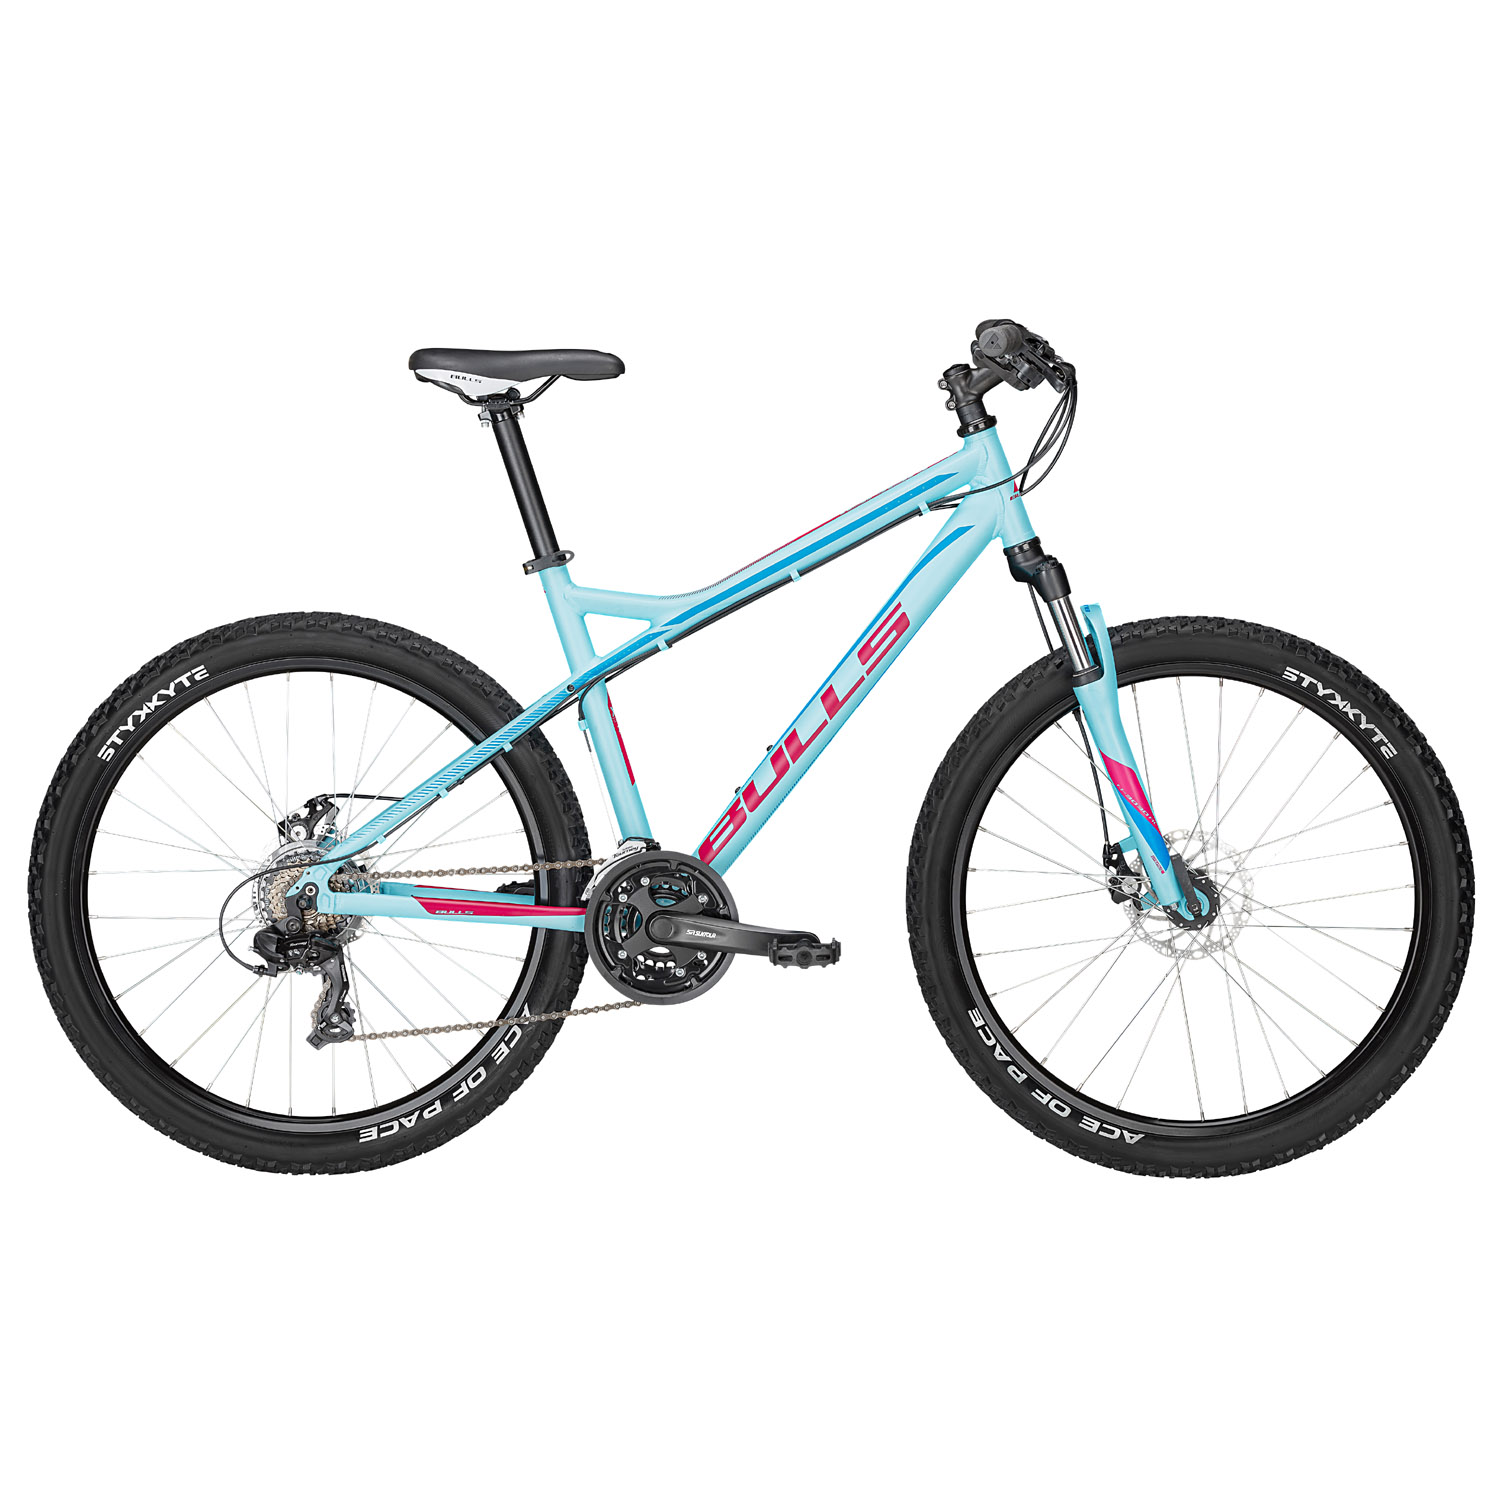 bulls nandi mountainbike 26 zoll damen 51 cm light blue. Black Bedroom Furniture Sets. Home Design Ideas